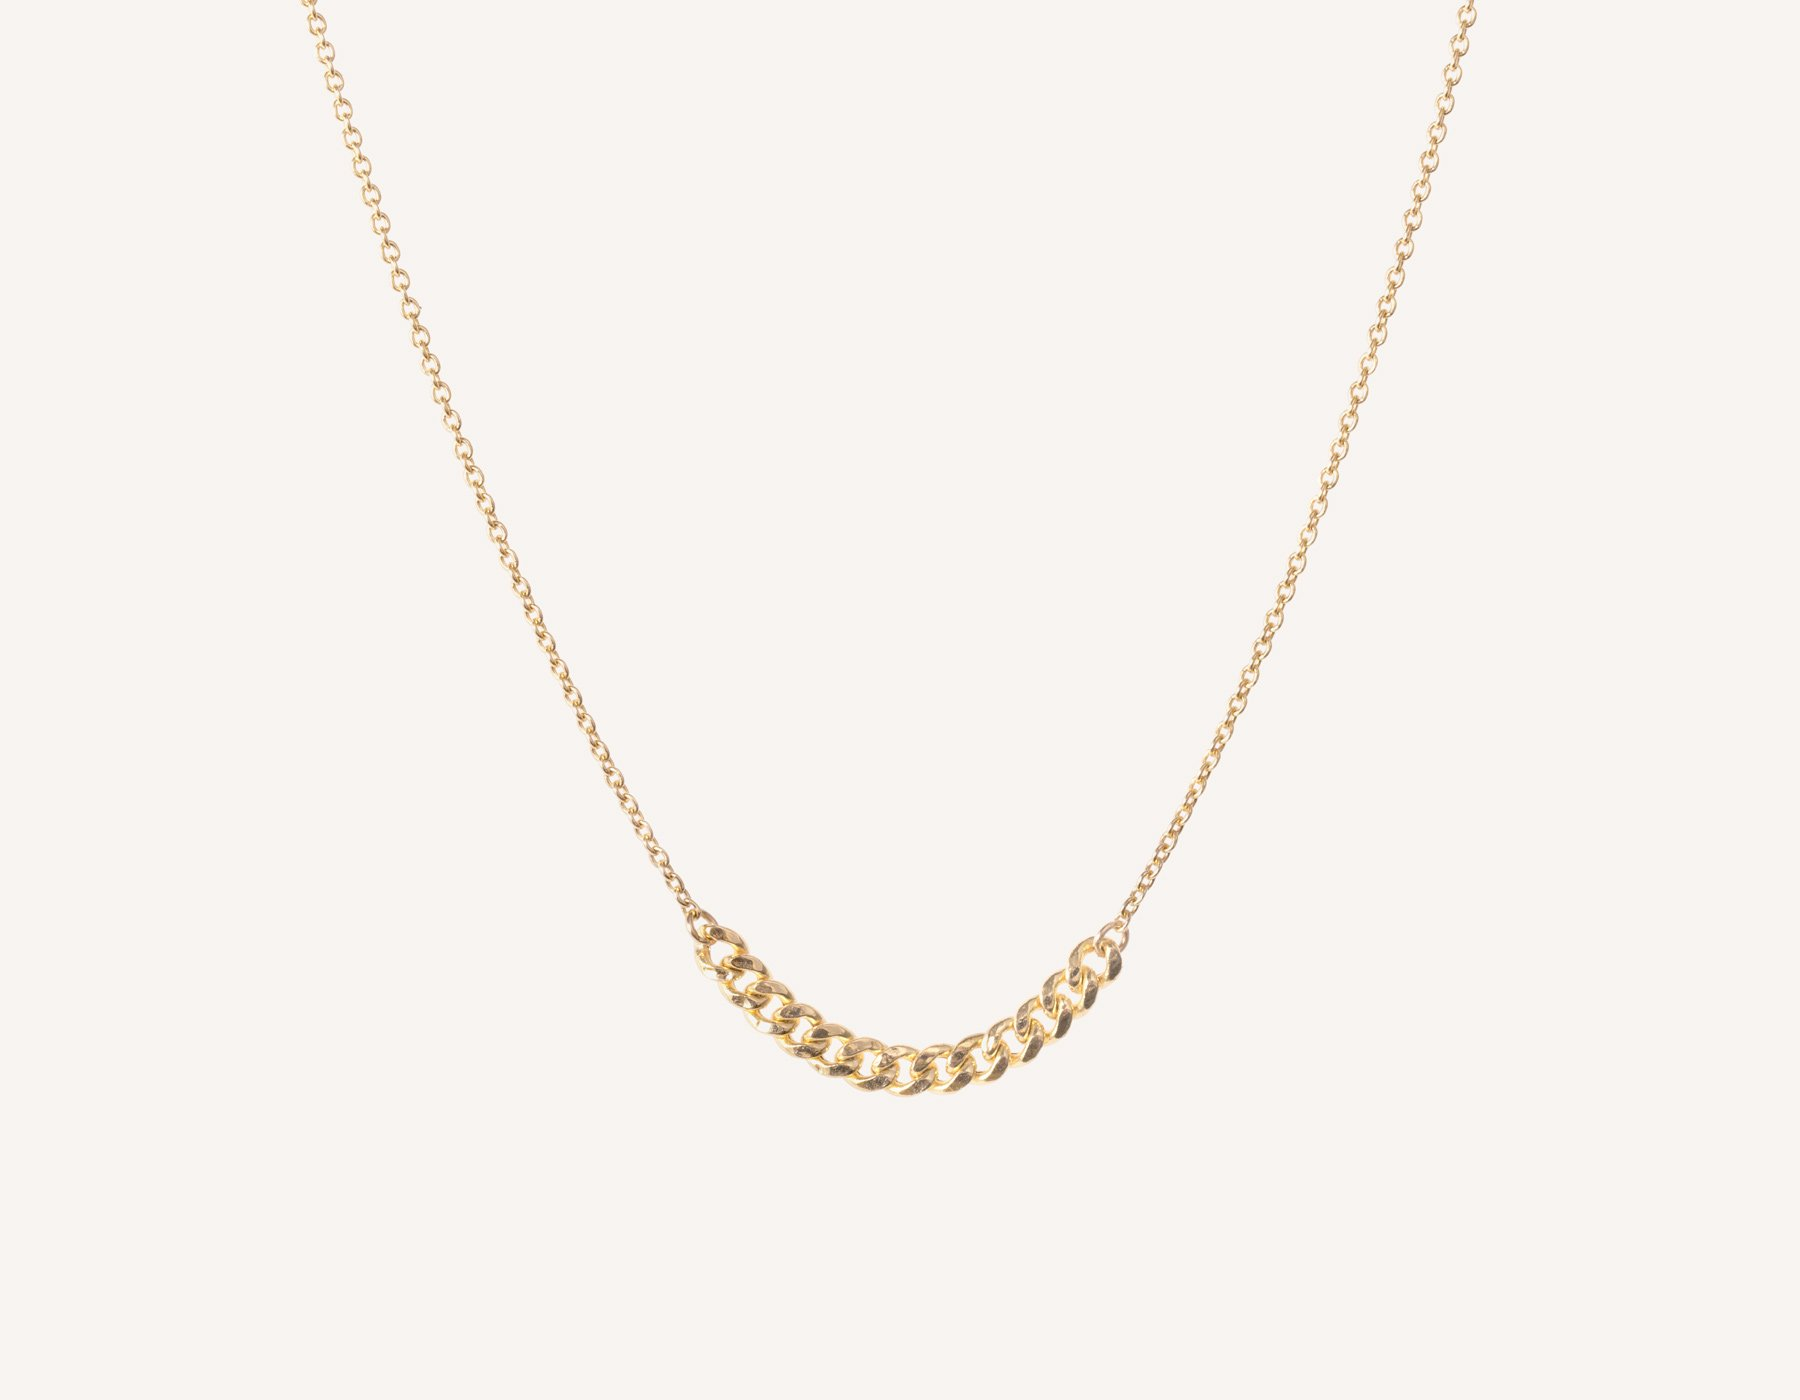 Vrai & Oro Necklace // Hollywood Outfit Inspiration - A Star Is Born